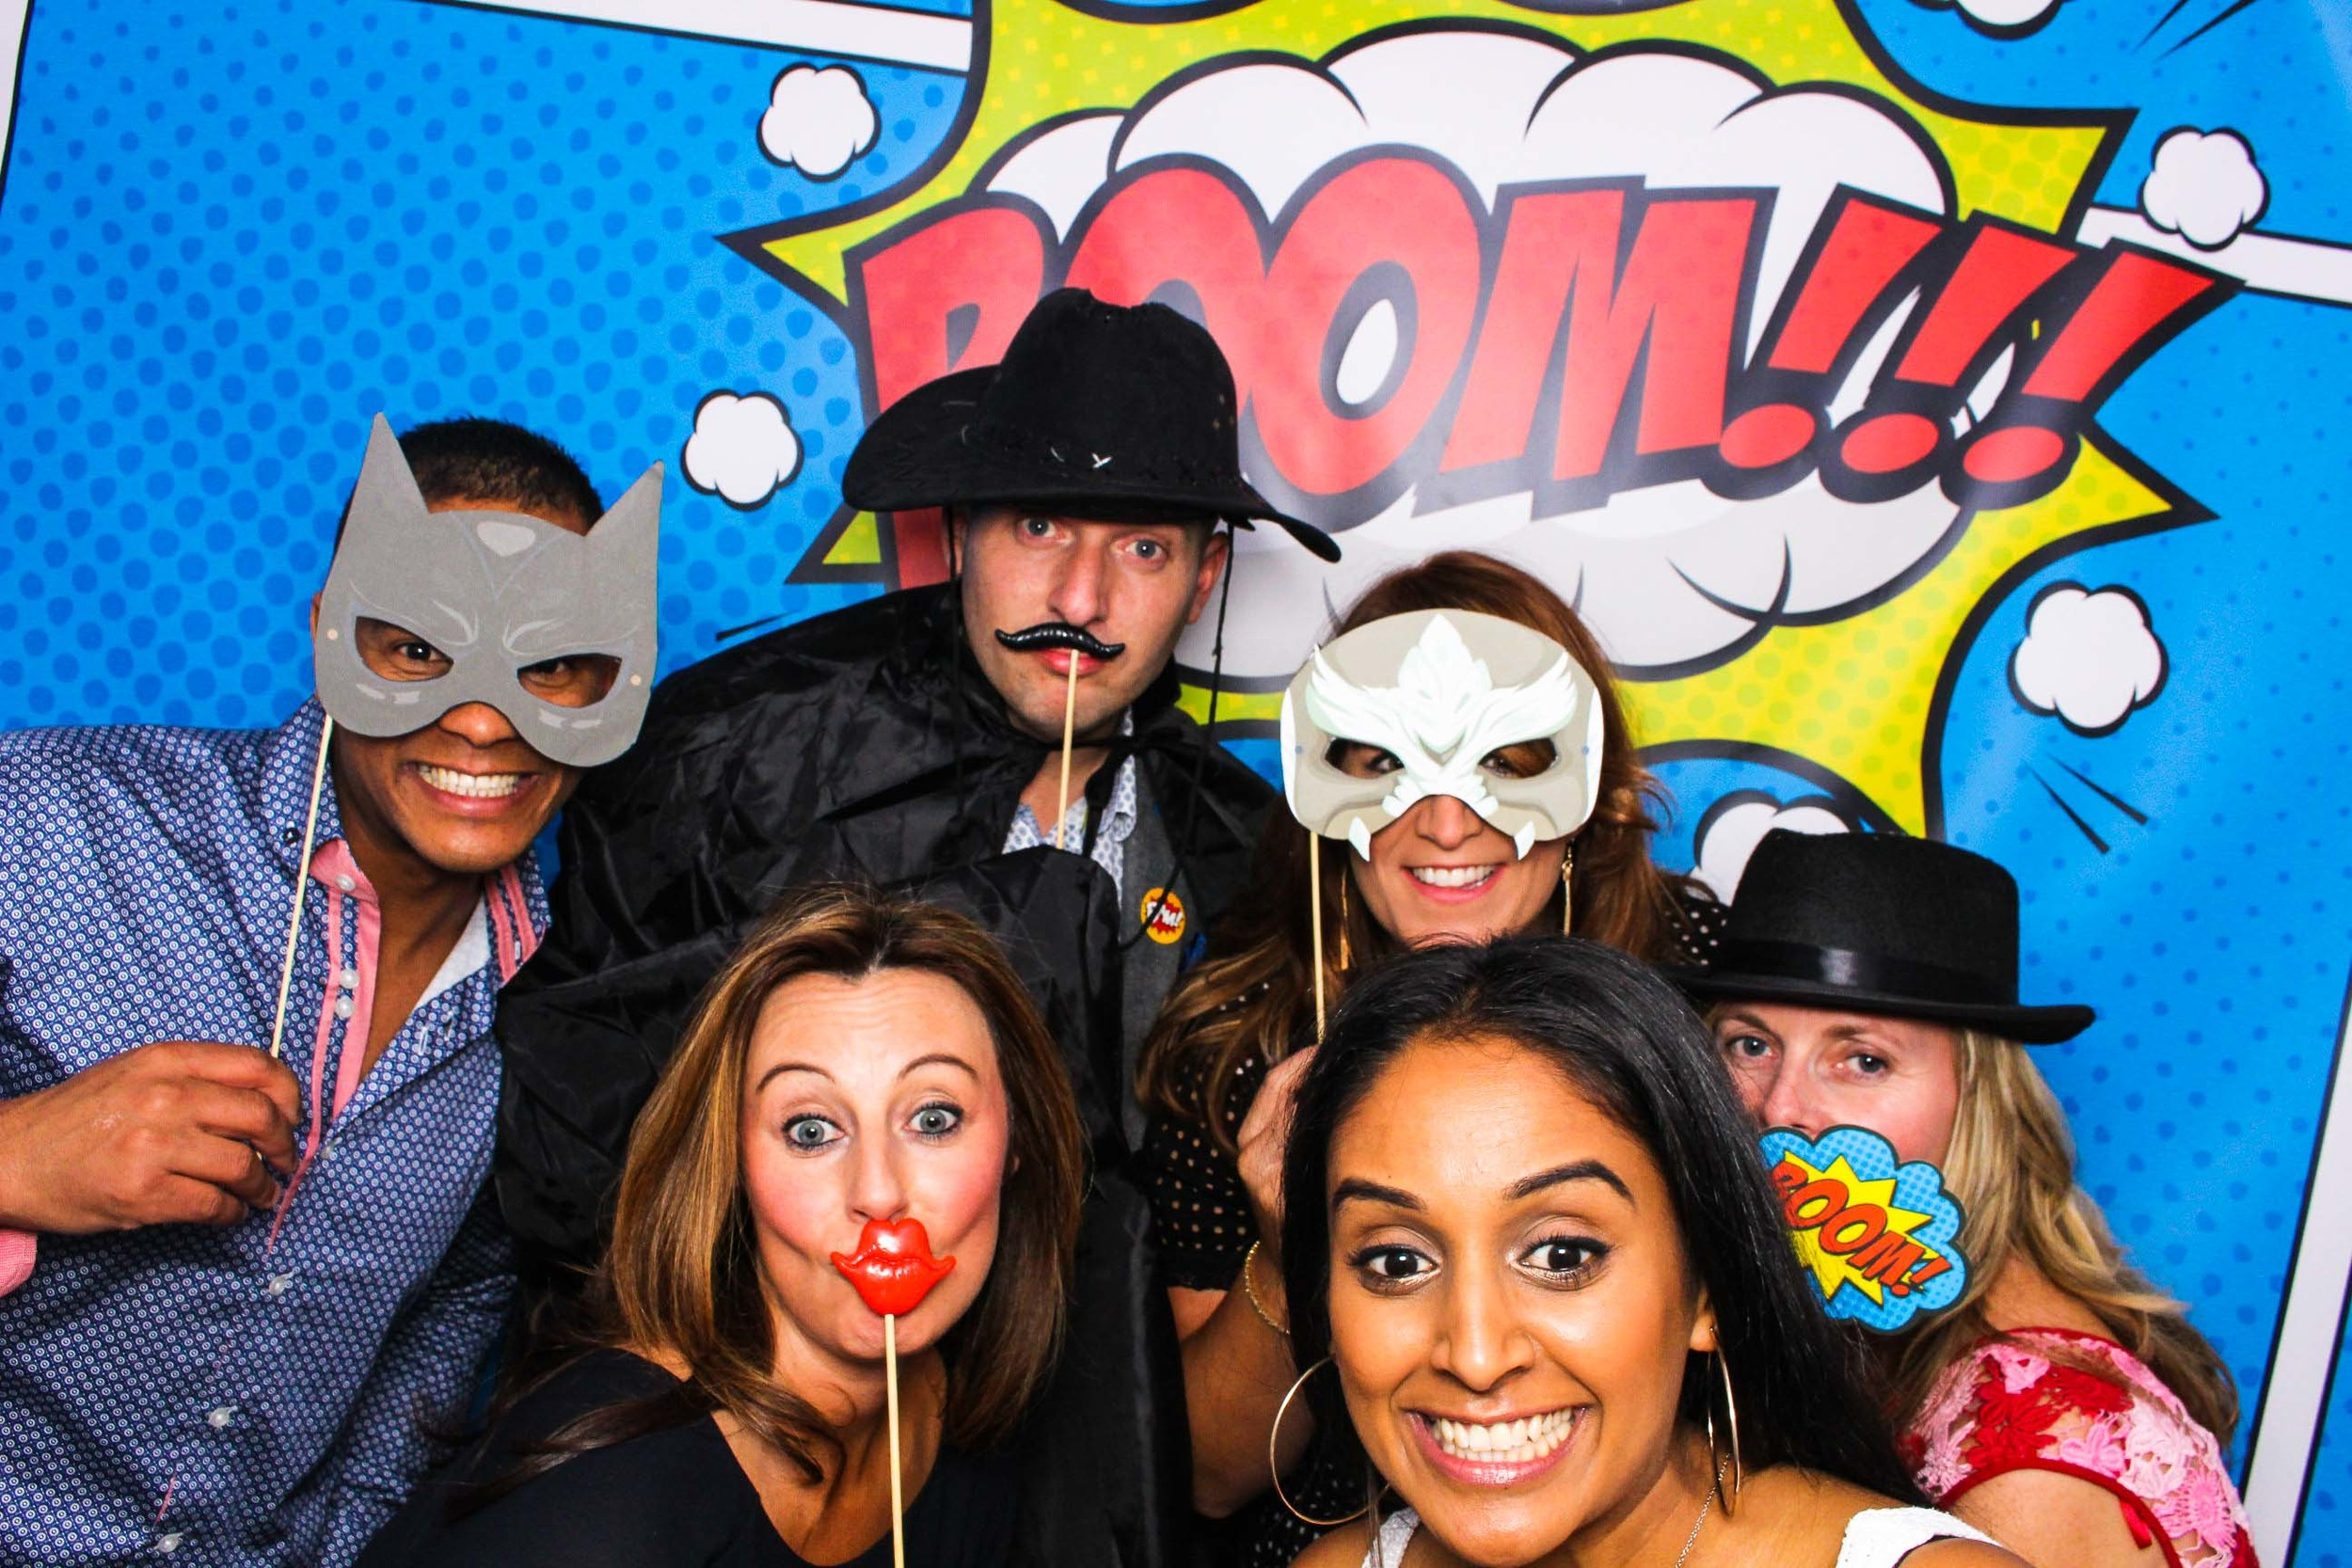 Fotoauto Photo Booth Hire - Shop Direct-266.jpg